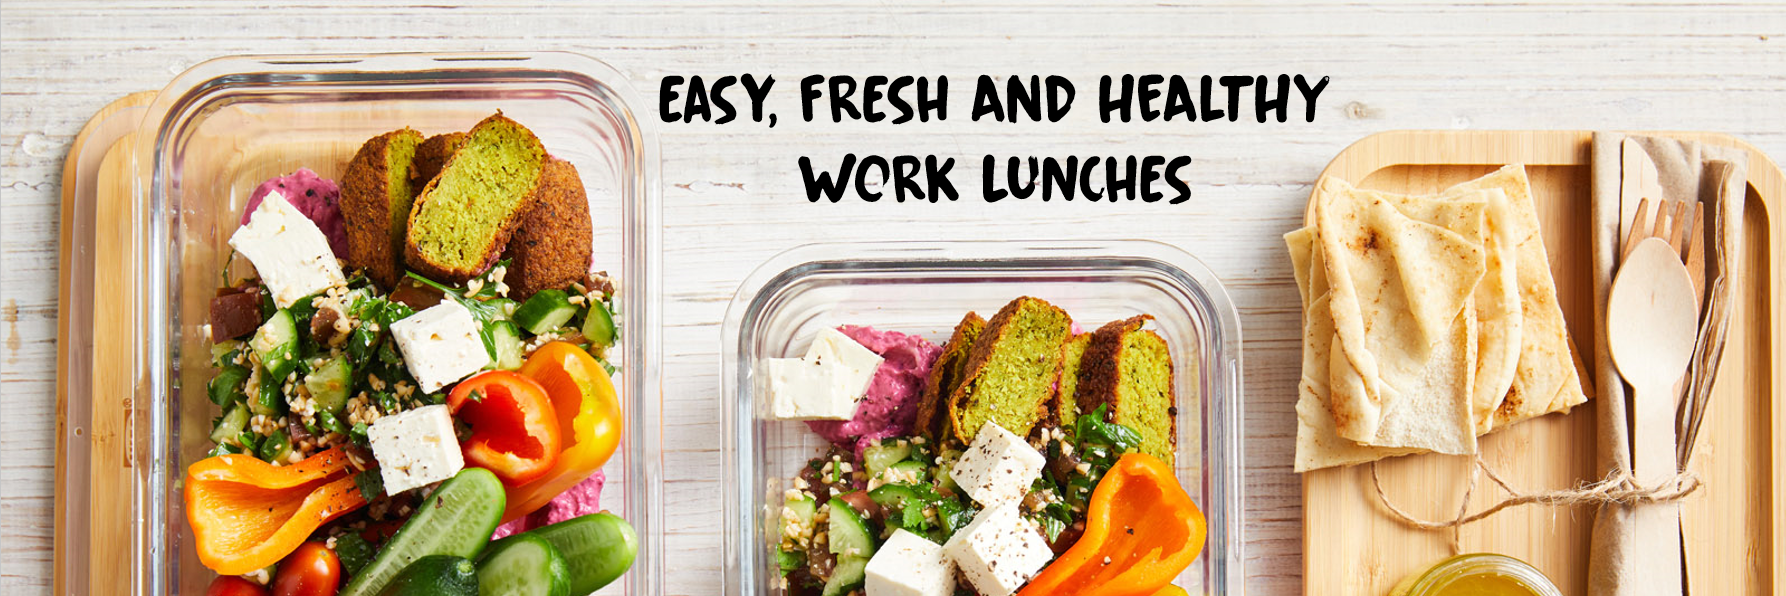 Easy fresh and healthy back to work lunches